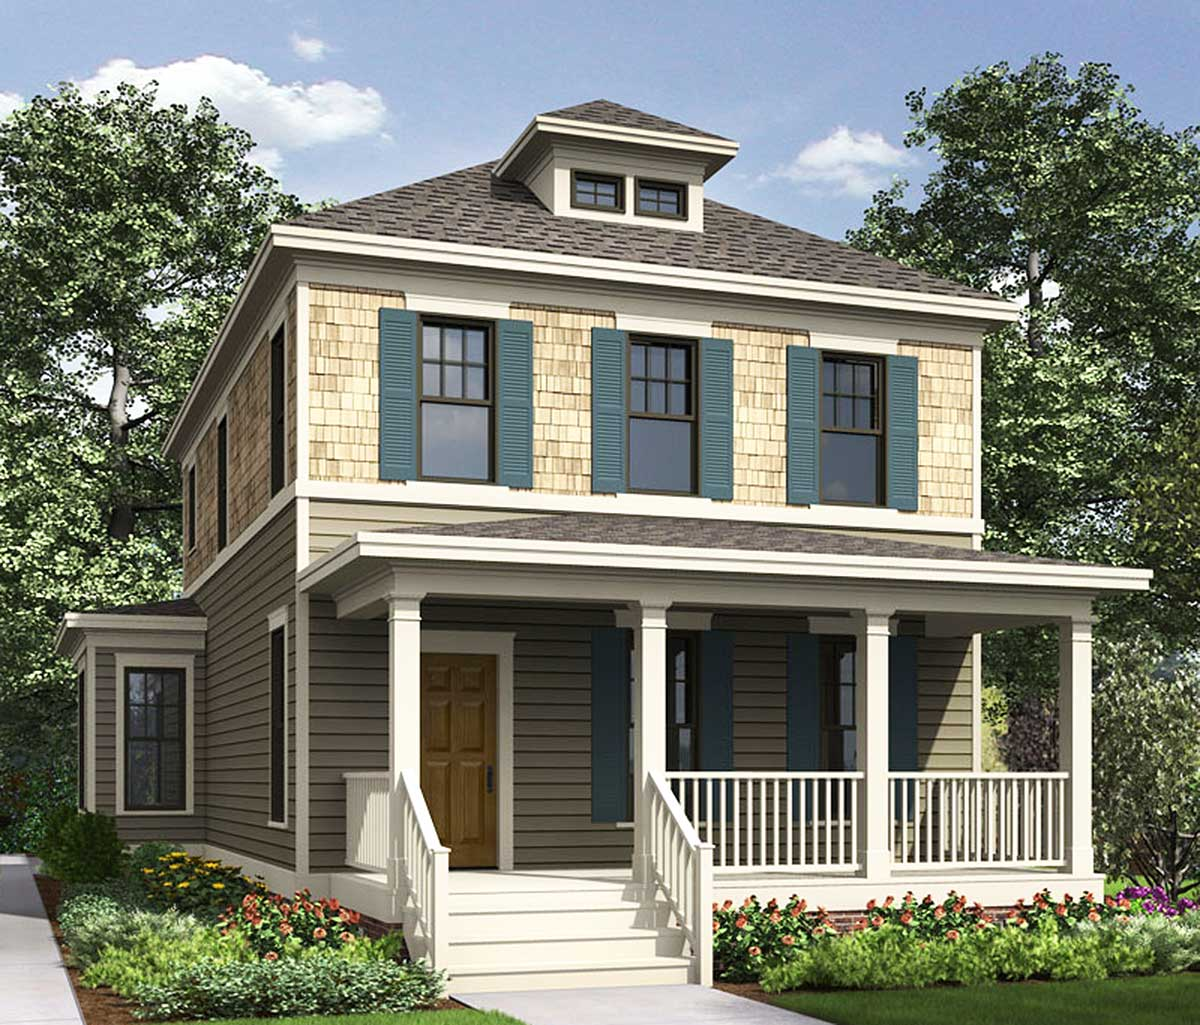 American Foursquare House Plans